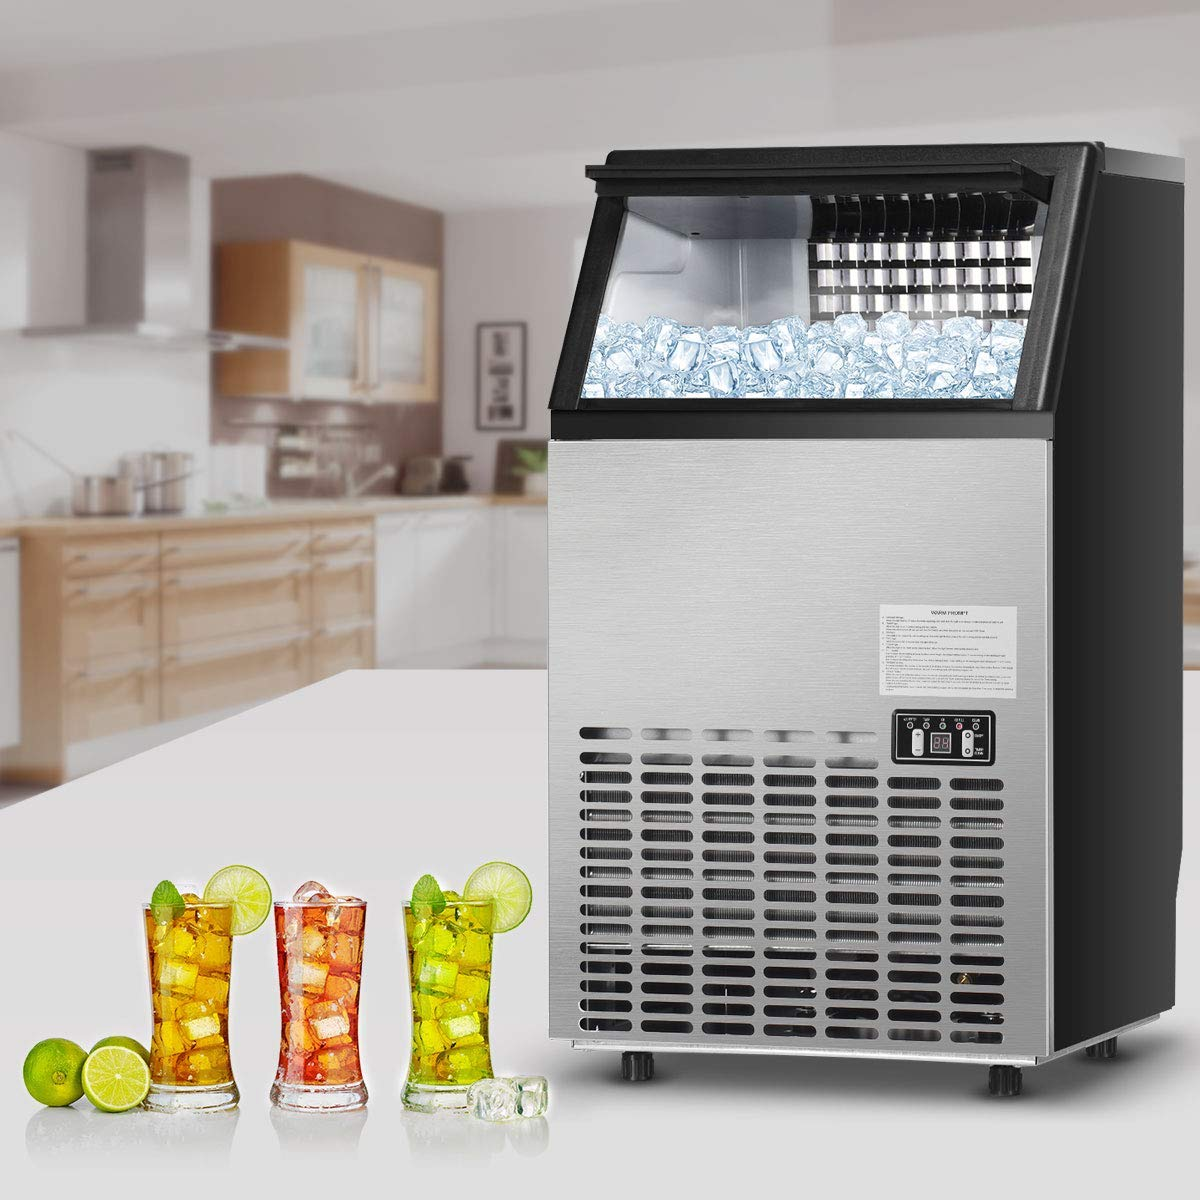 Commercial Ice Machine On Clearance Segmart Freestanding Built In Stainless Steel Ice Maker 100lbs 24h 33lbs Storage Under Counter Automatic Ice Machine For Restaurant Bar Cafe S11486 Walmart Com Walmart Com